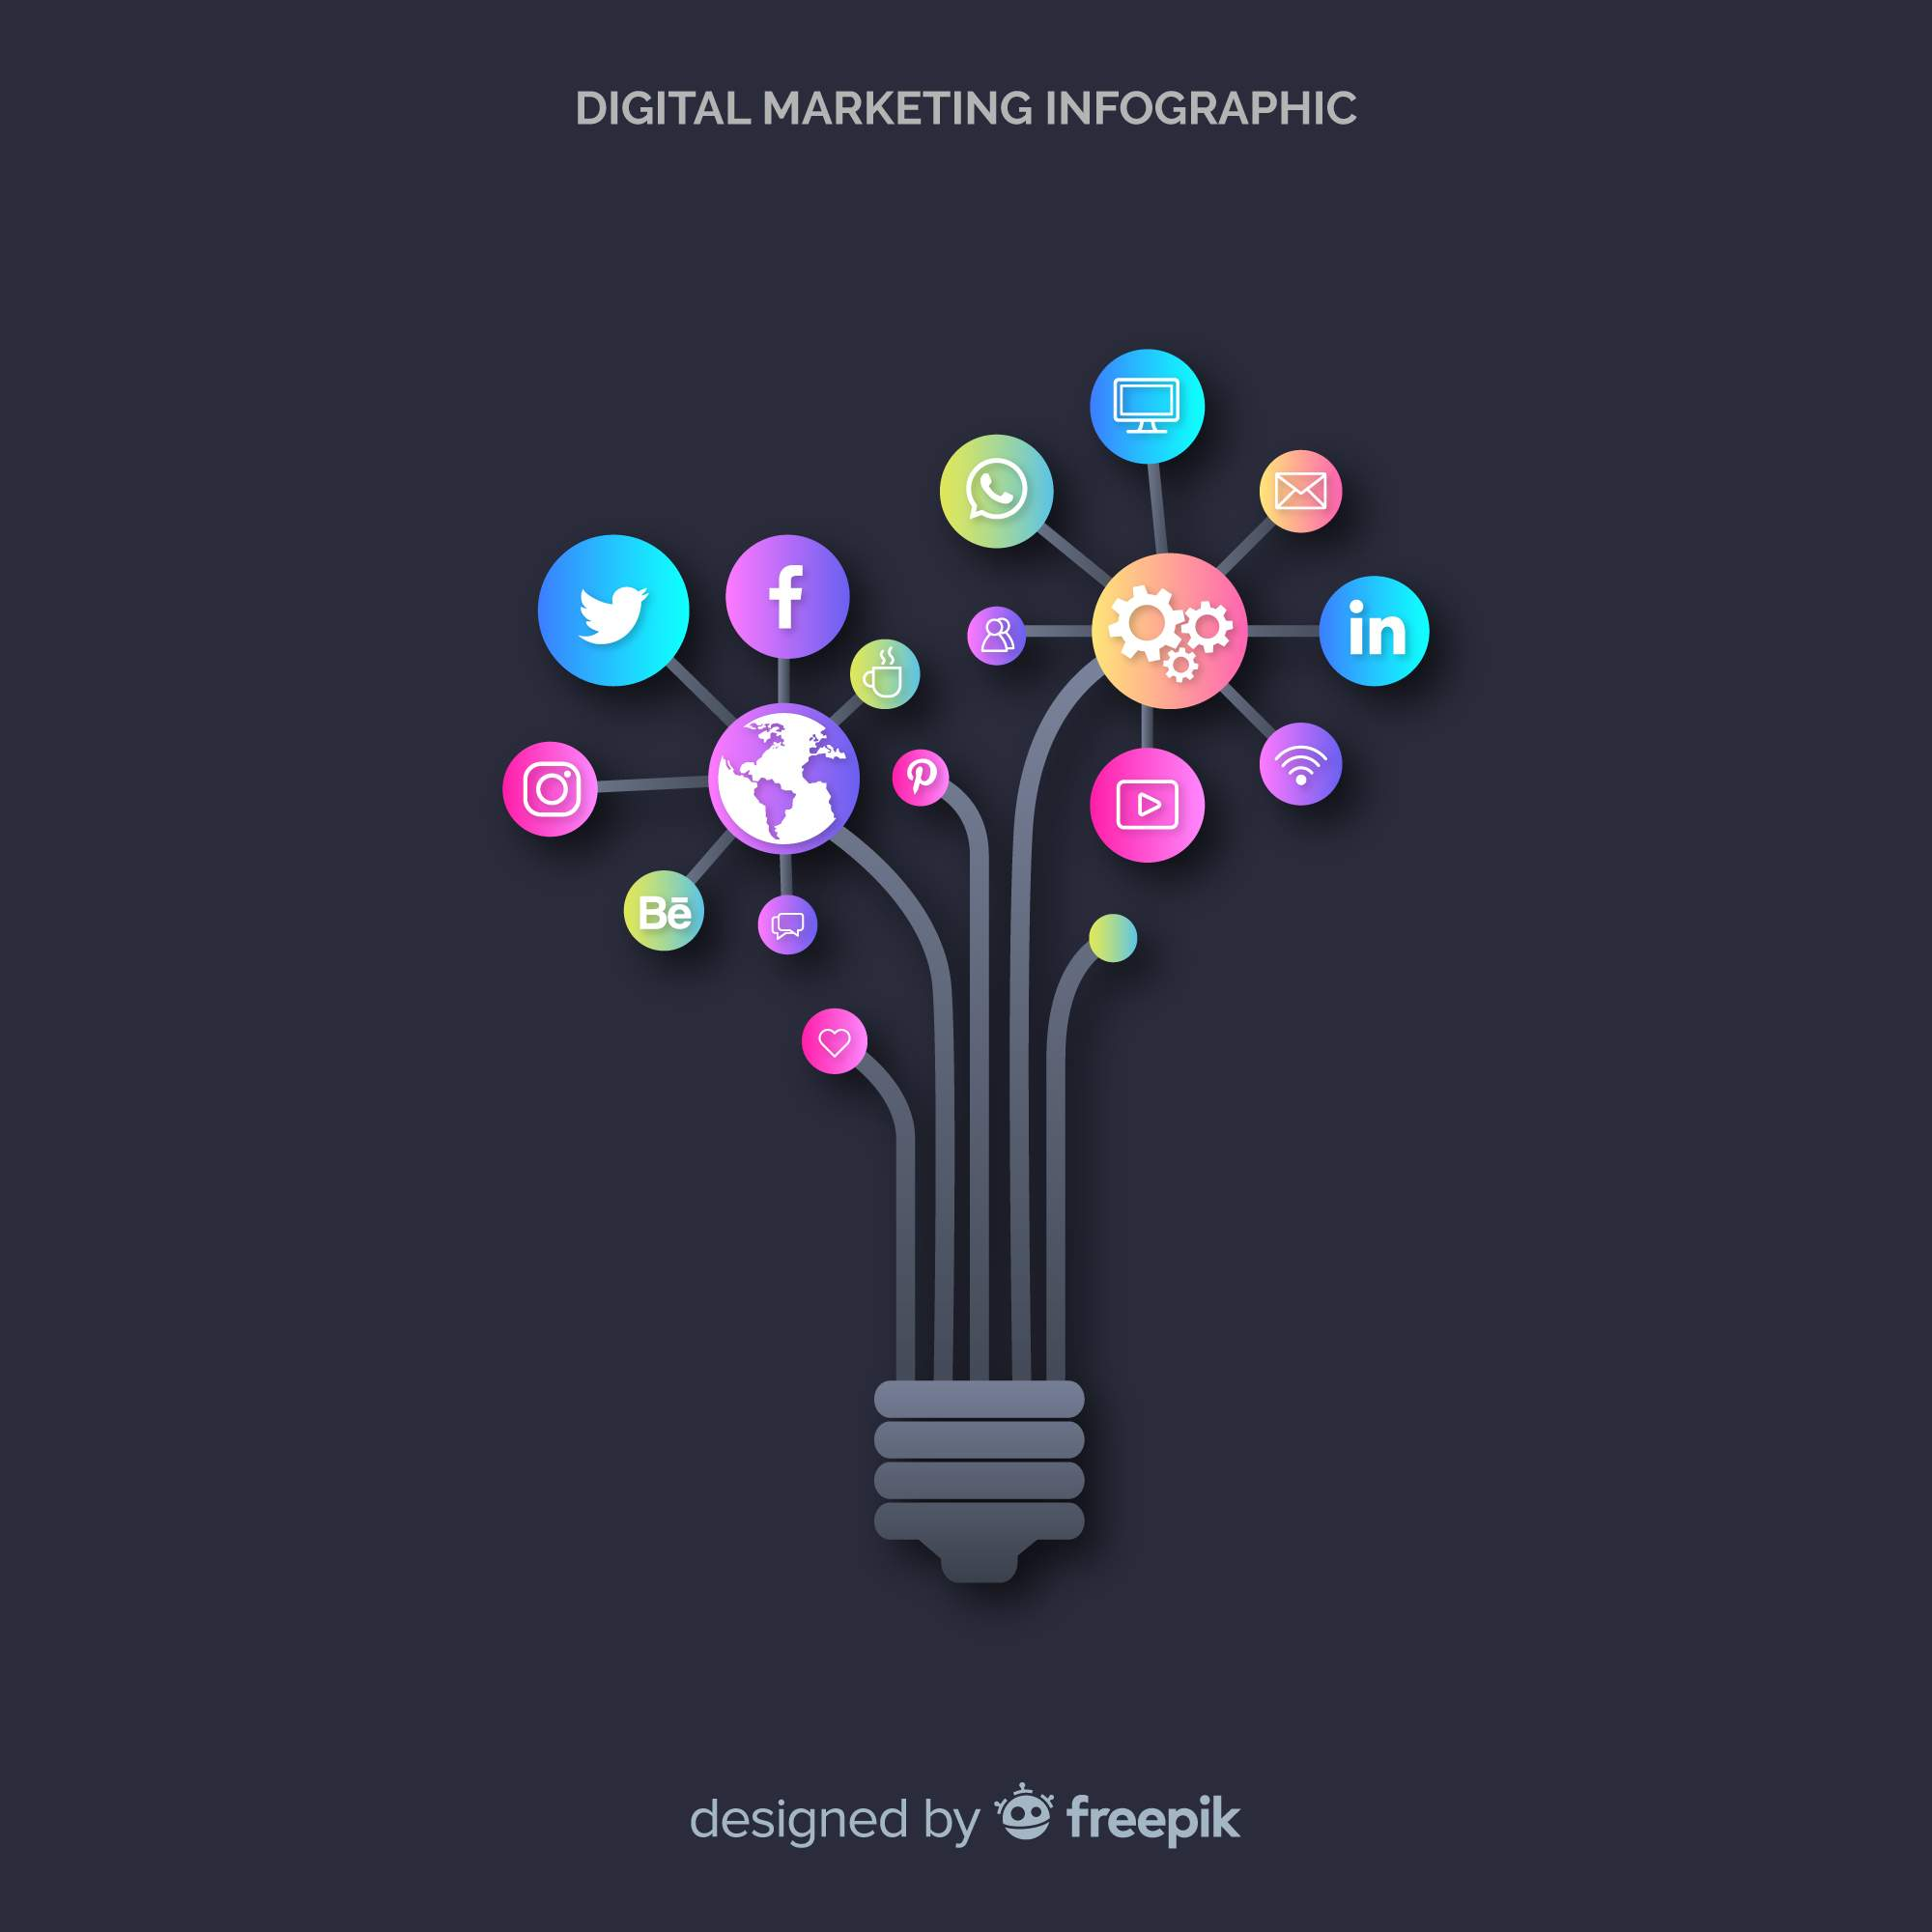 Simple Ways Small Businesses Can Do Digital Marketing